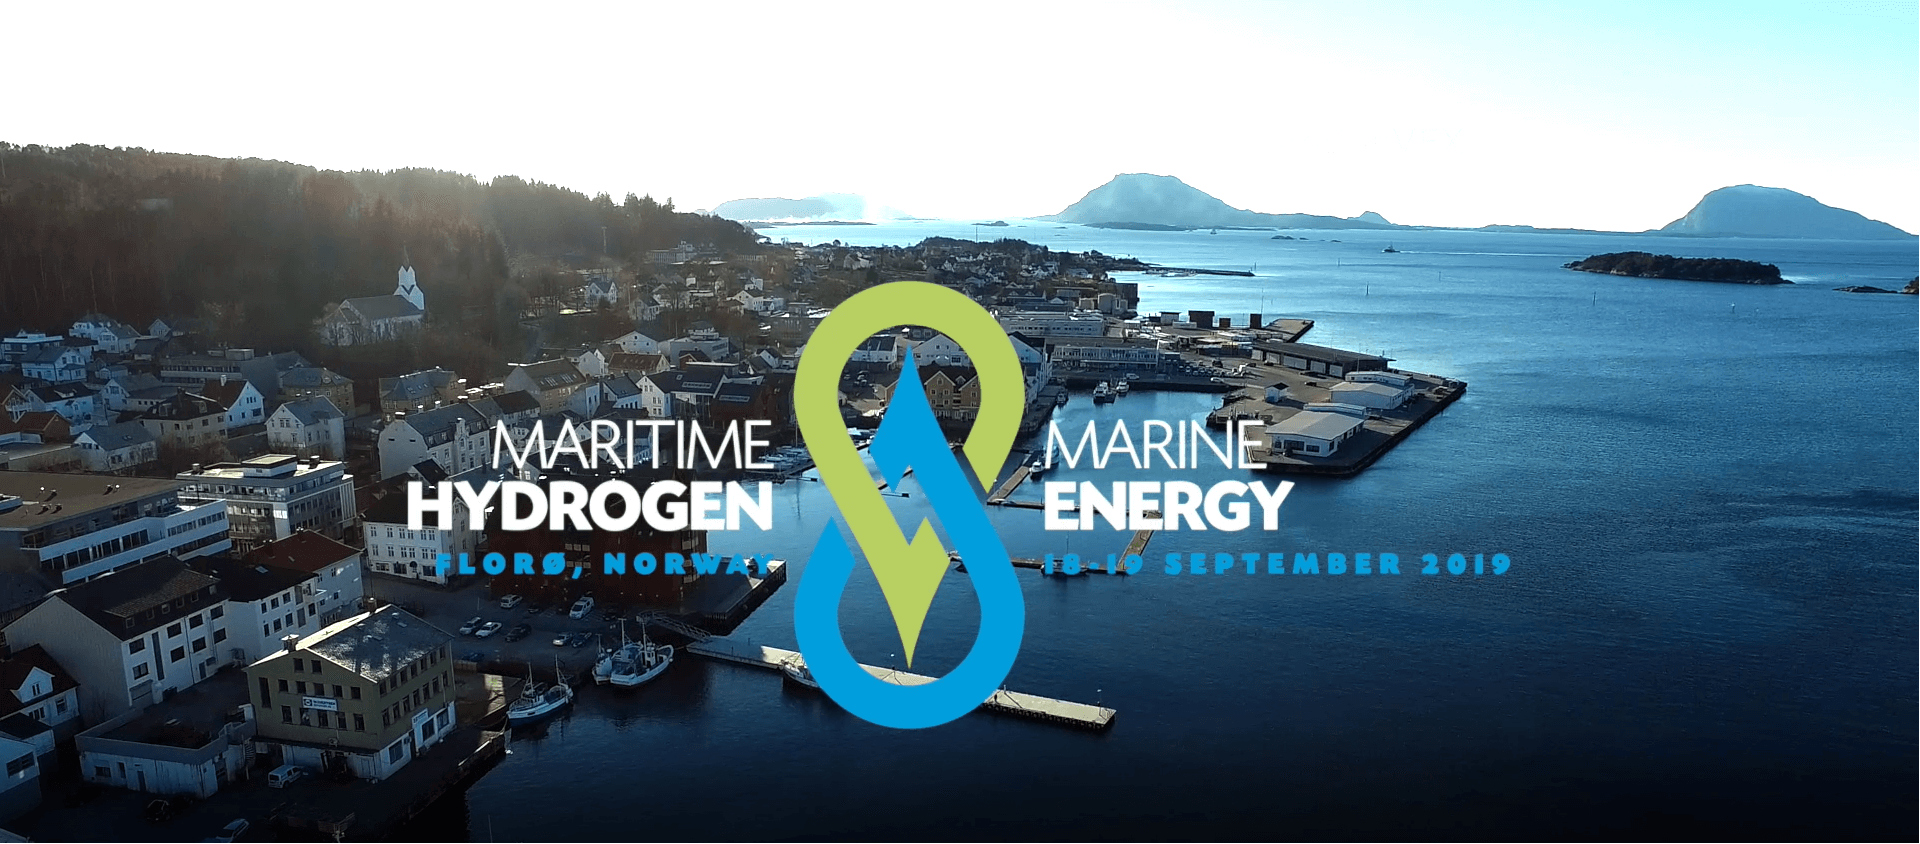 Gexcon to Present at the 4th Annual Conference of Maritime Hydrogen and Marine Energy in Norway